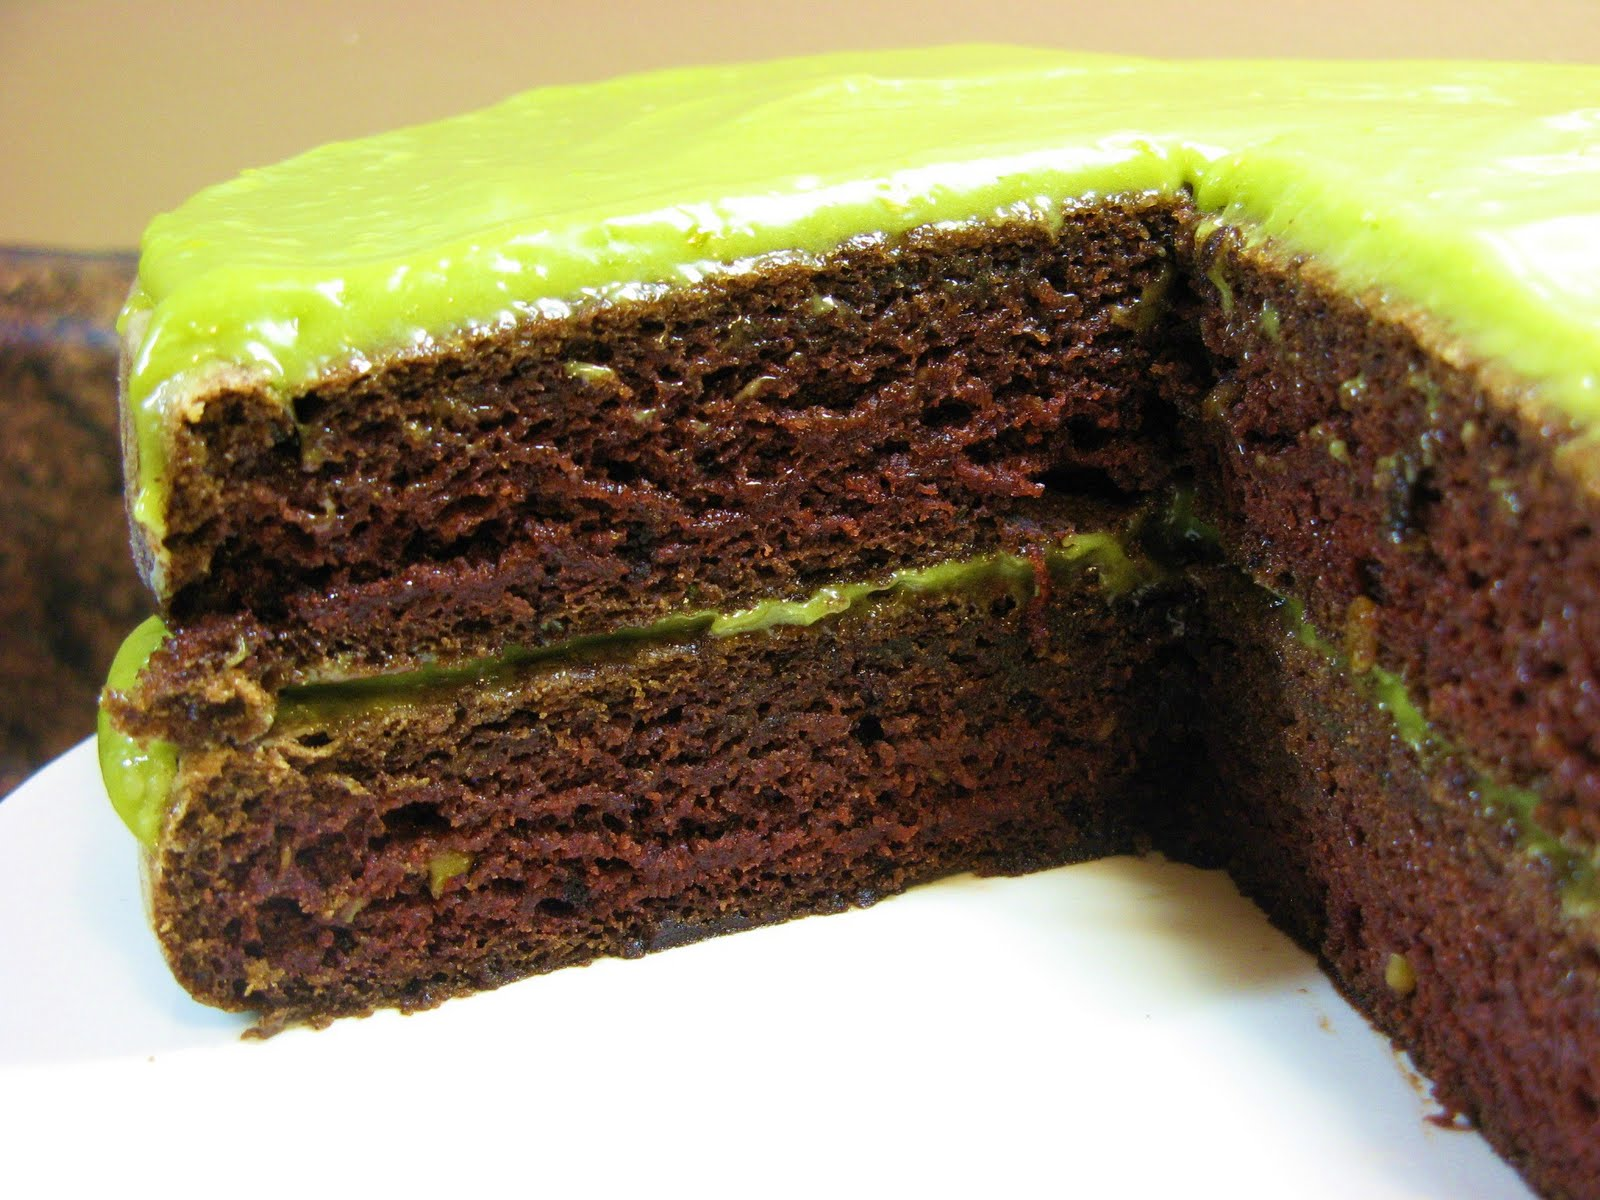 The Well-Fed Newlyweds: Vegan Chocolate Avocado Cake